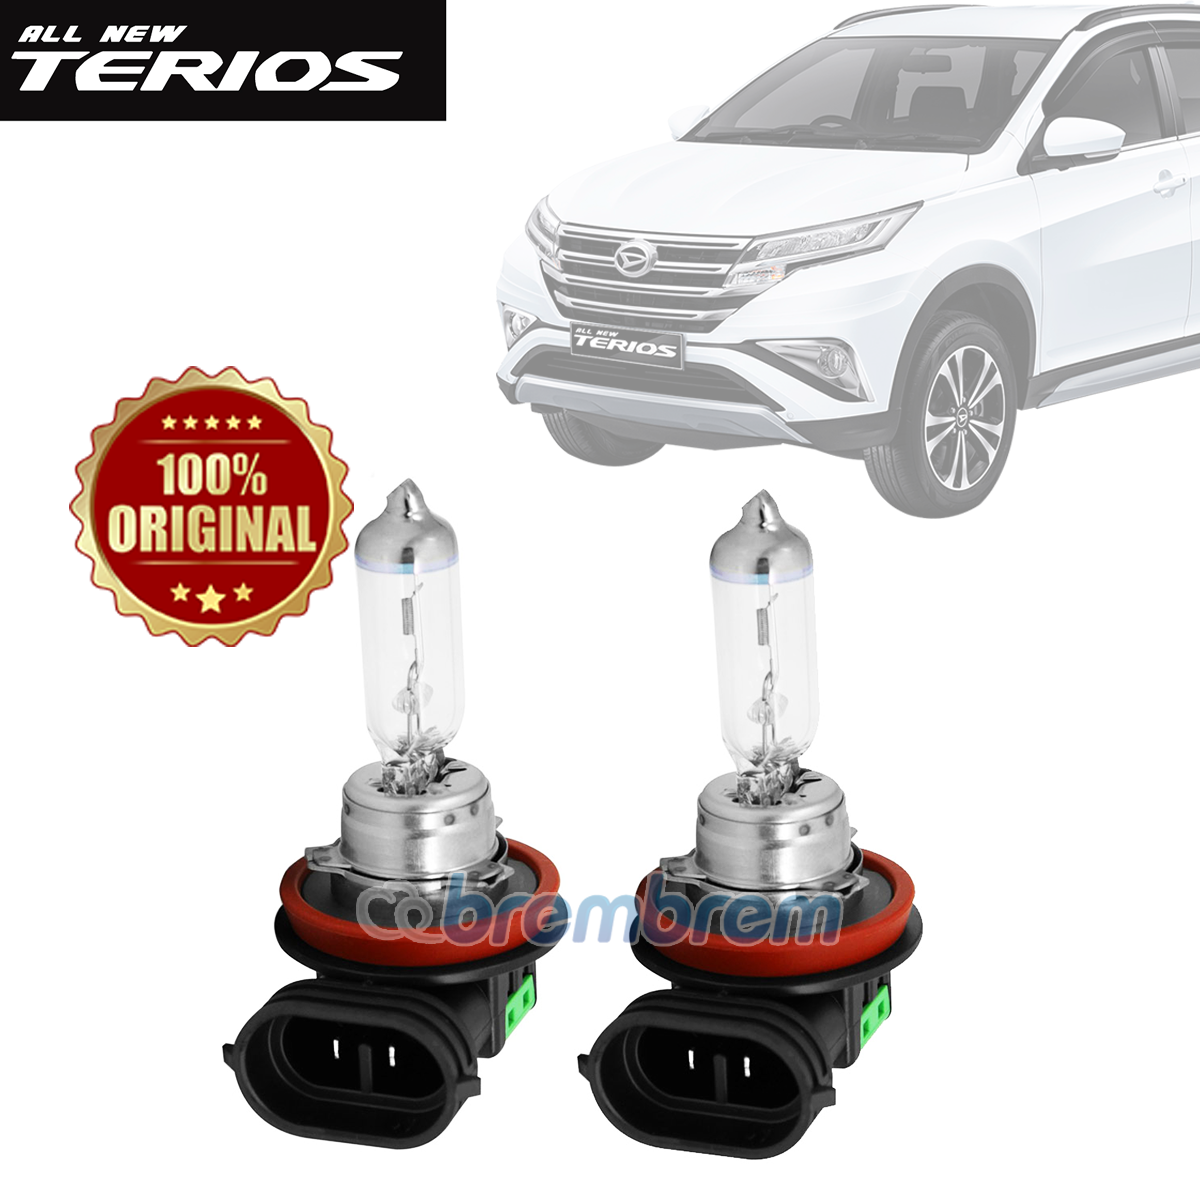 PHILIPS XTREME VISION H11 (3700K) - LAMPU HALOGEN DAIHATSU ALL NEW TERIOS